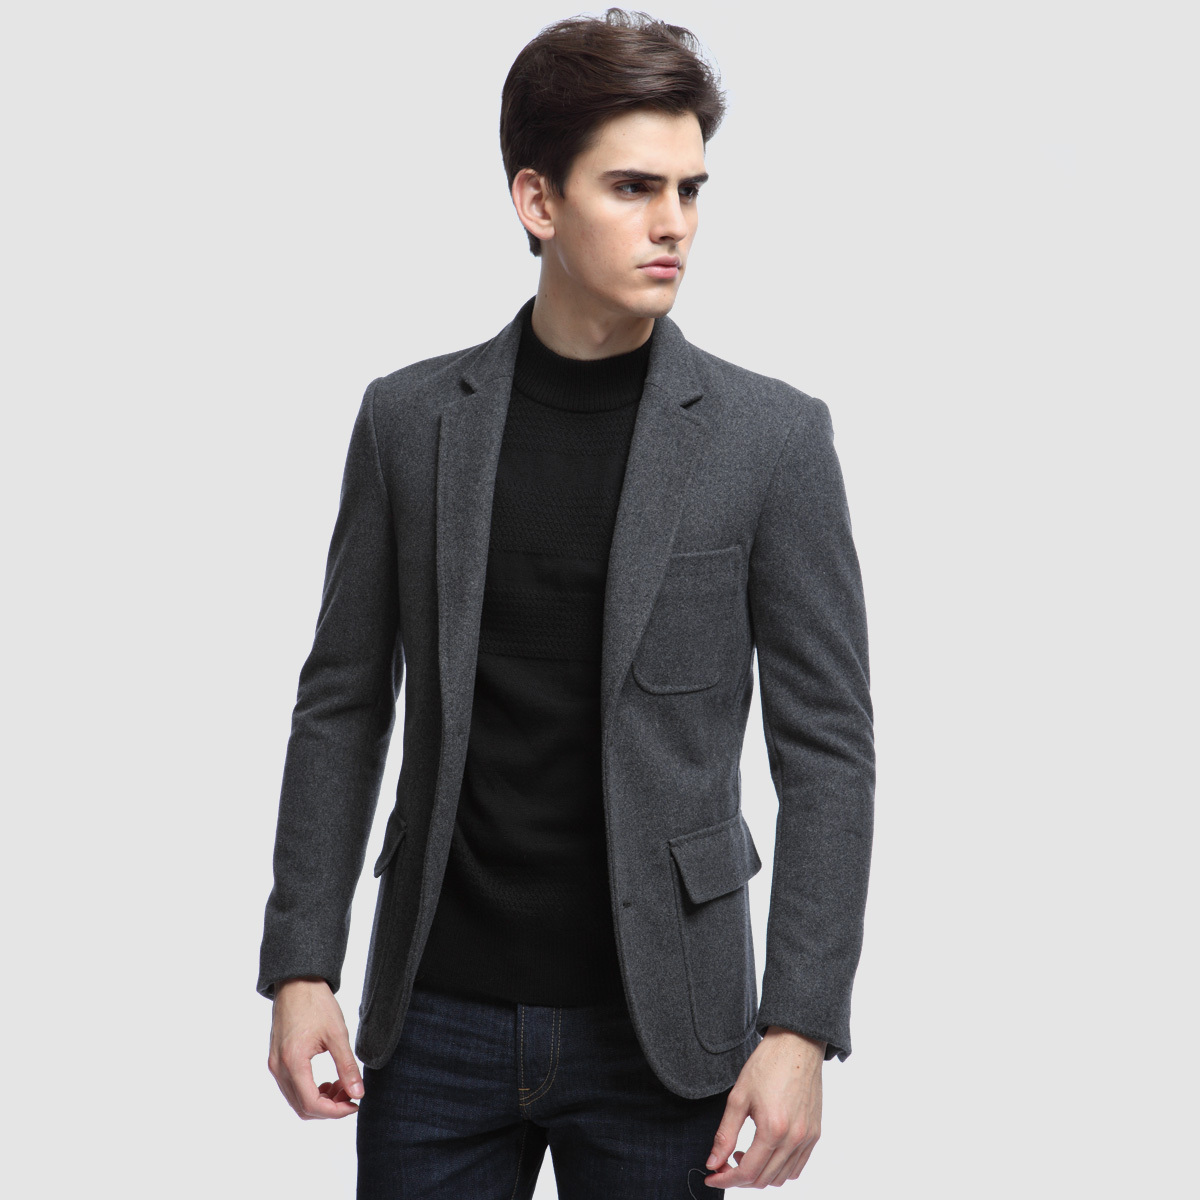 Stylish men's suit jackets and coats take sophistication to a whole new level. Whether you have a family wedding coming up or a big presentation at the office, Sears carries well-fitted men's blazers that make you feel confident and effortlessly stylish.